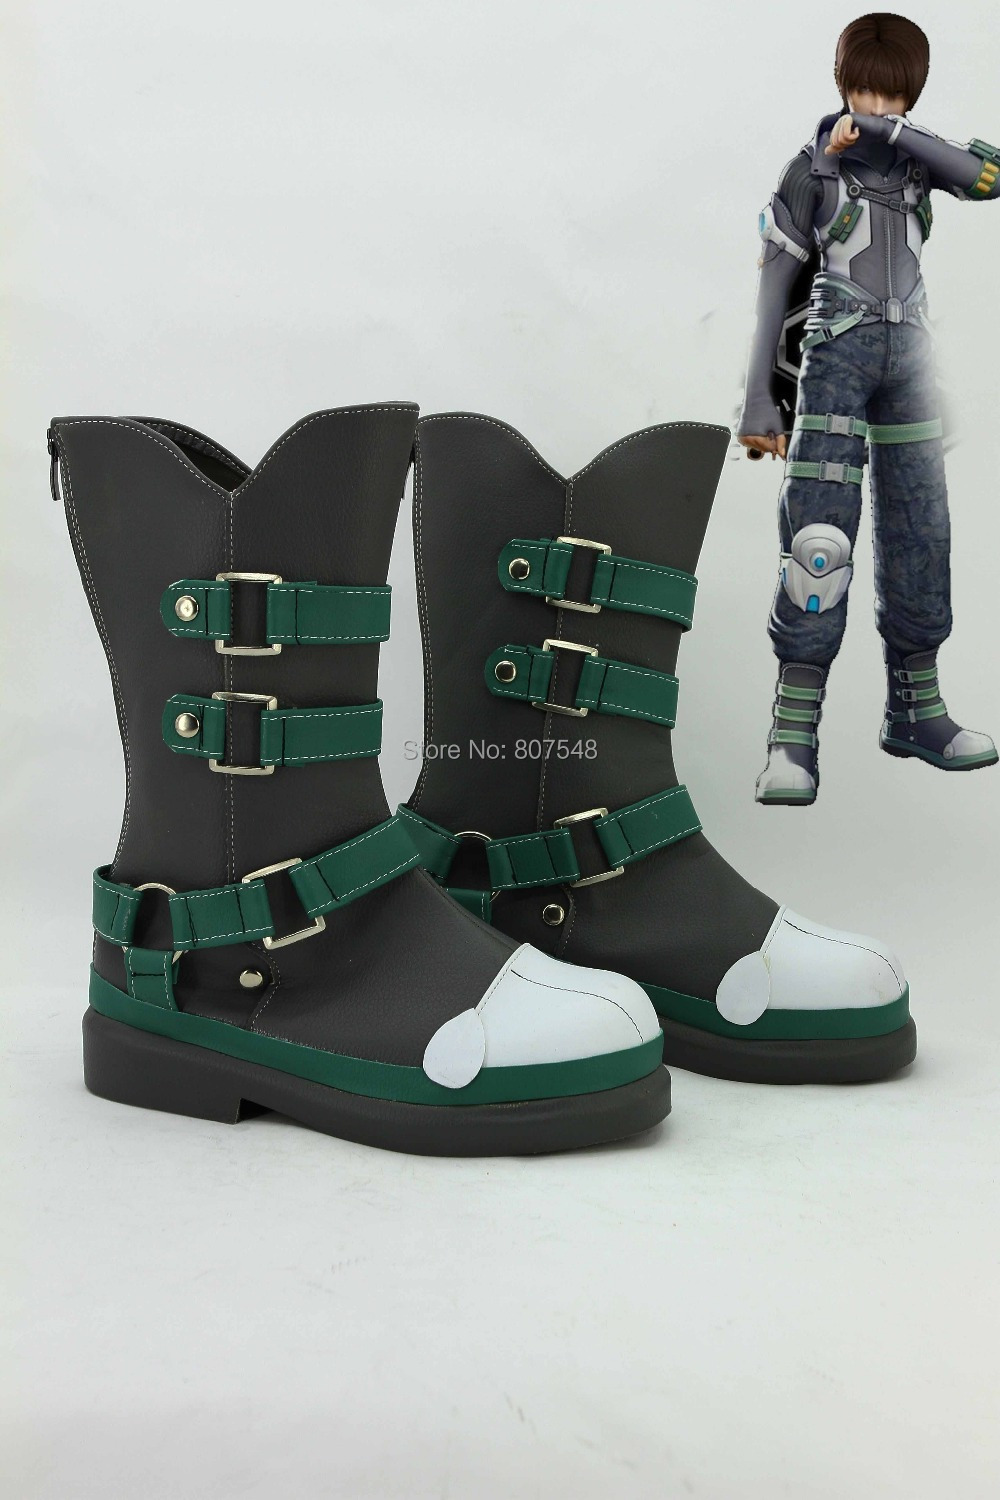 Anime Boy Shoes : anime, shoes, NANOCORE, Anime, Cosplay, Boots, Shoes, Custom, Length, Shipping|shoe, Carnival, Women|shoe, Storage, Cabinet, Homeboots, AliExpress